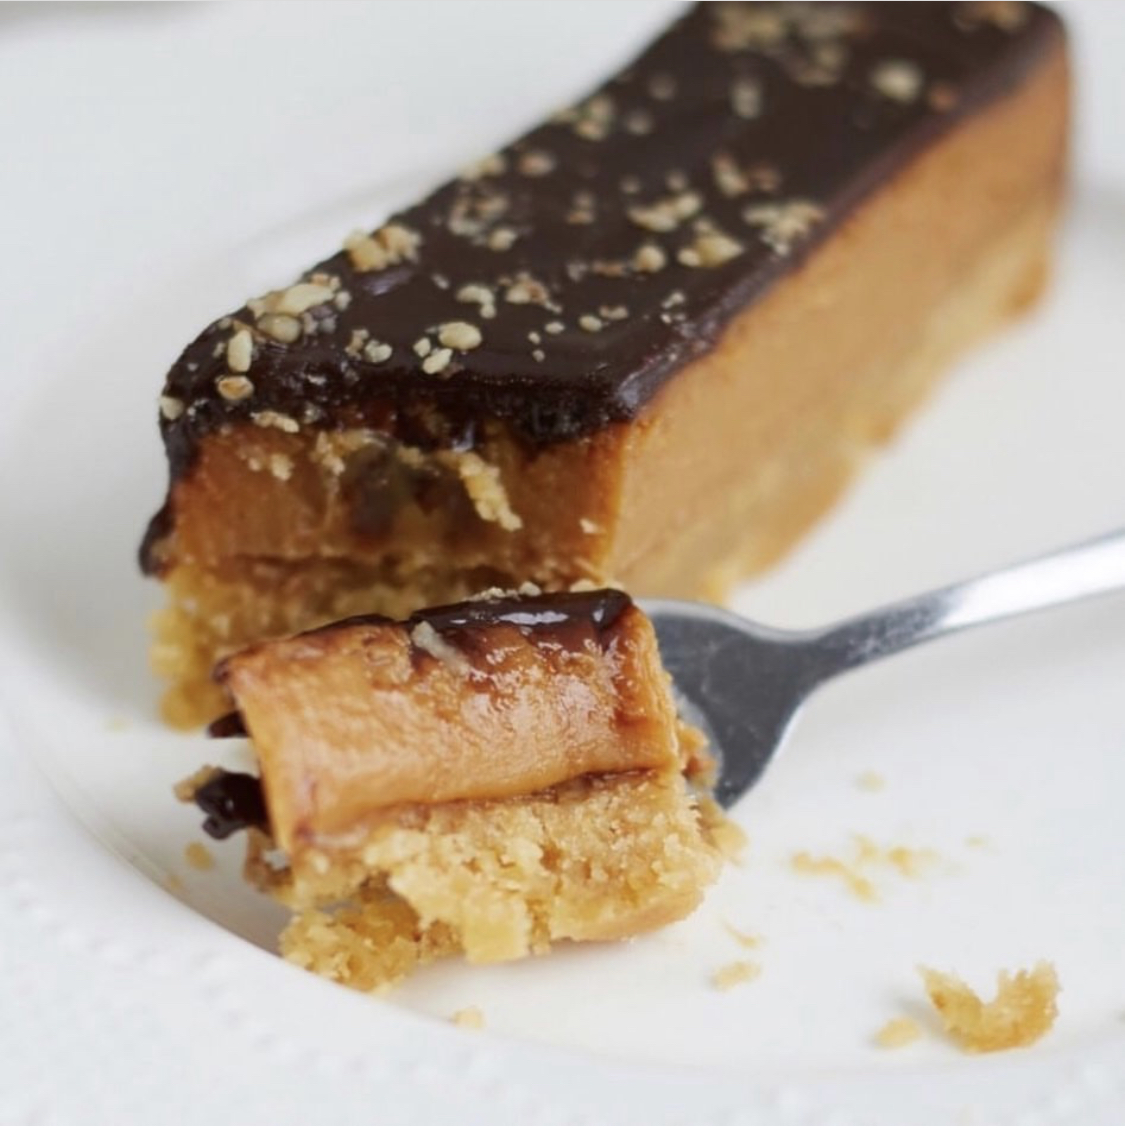 Good Karma caramel slice